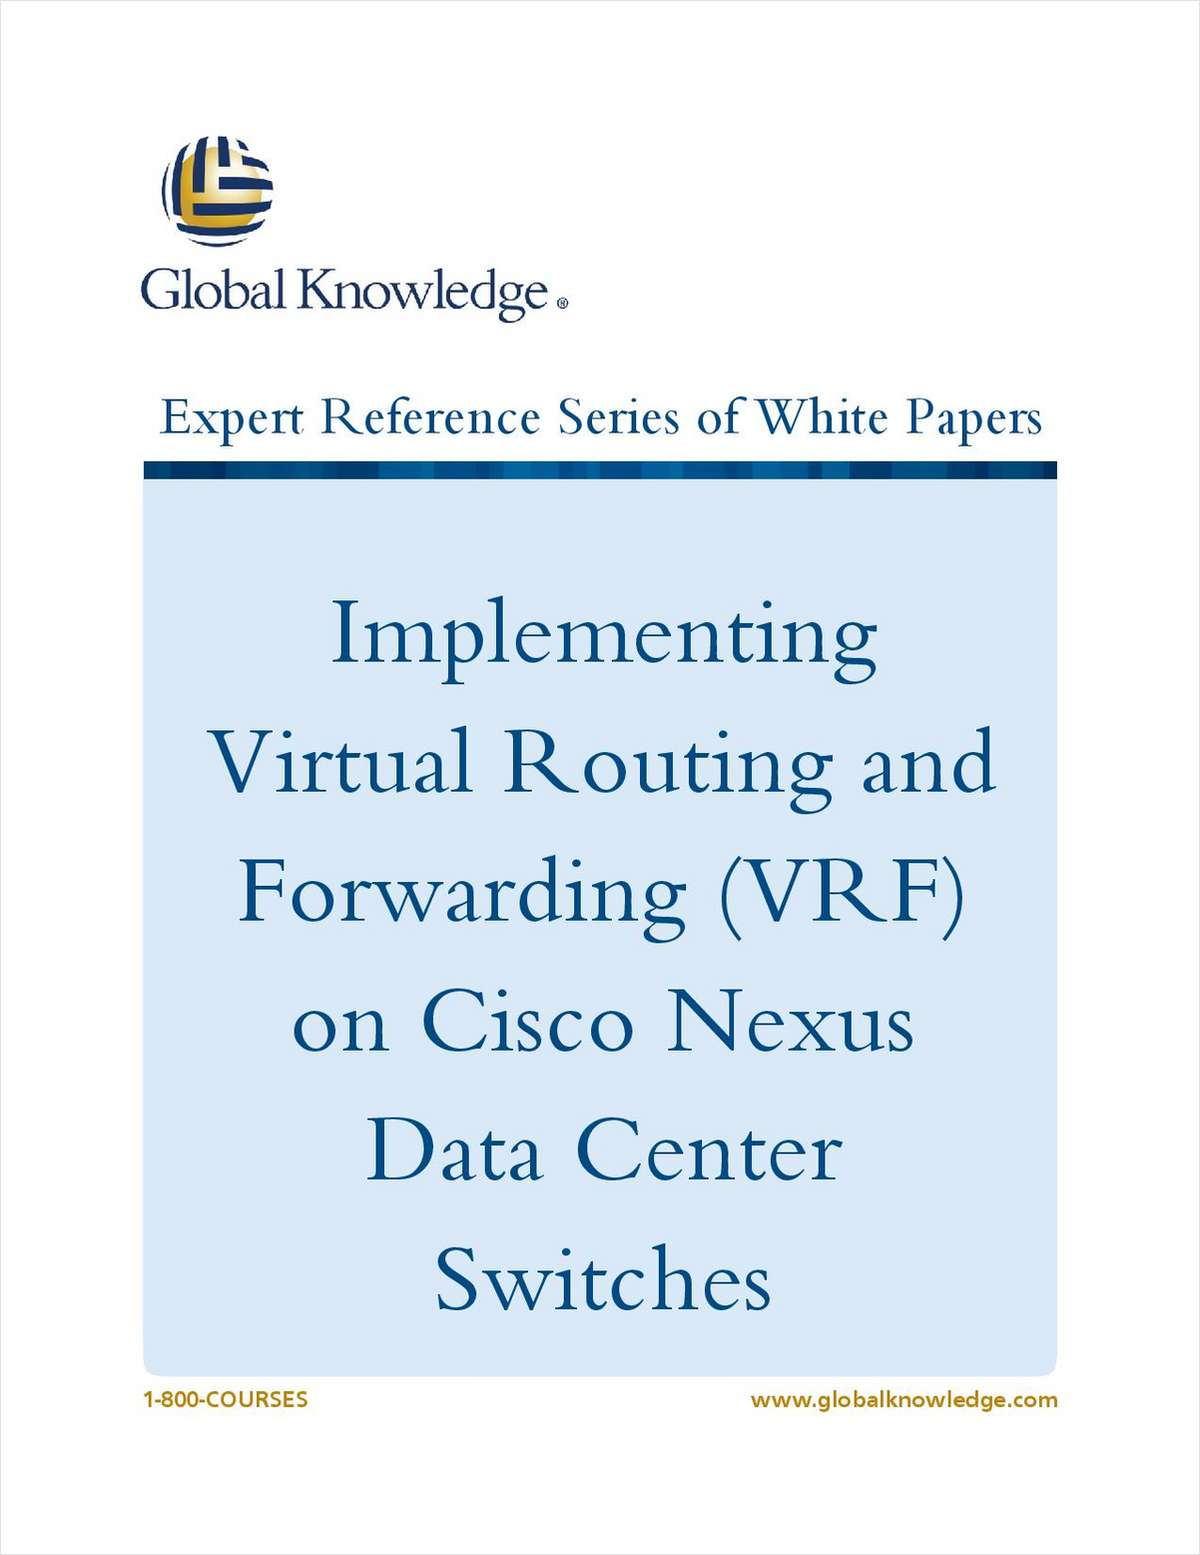 Implementing Virtual Routing and Forwarding (VRF) on Cisco Nexus Data Center Switches